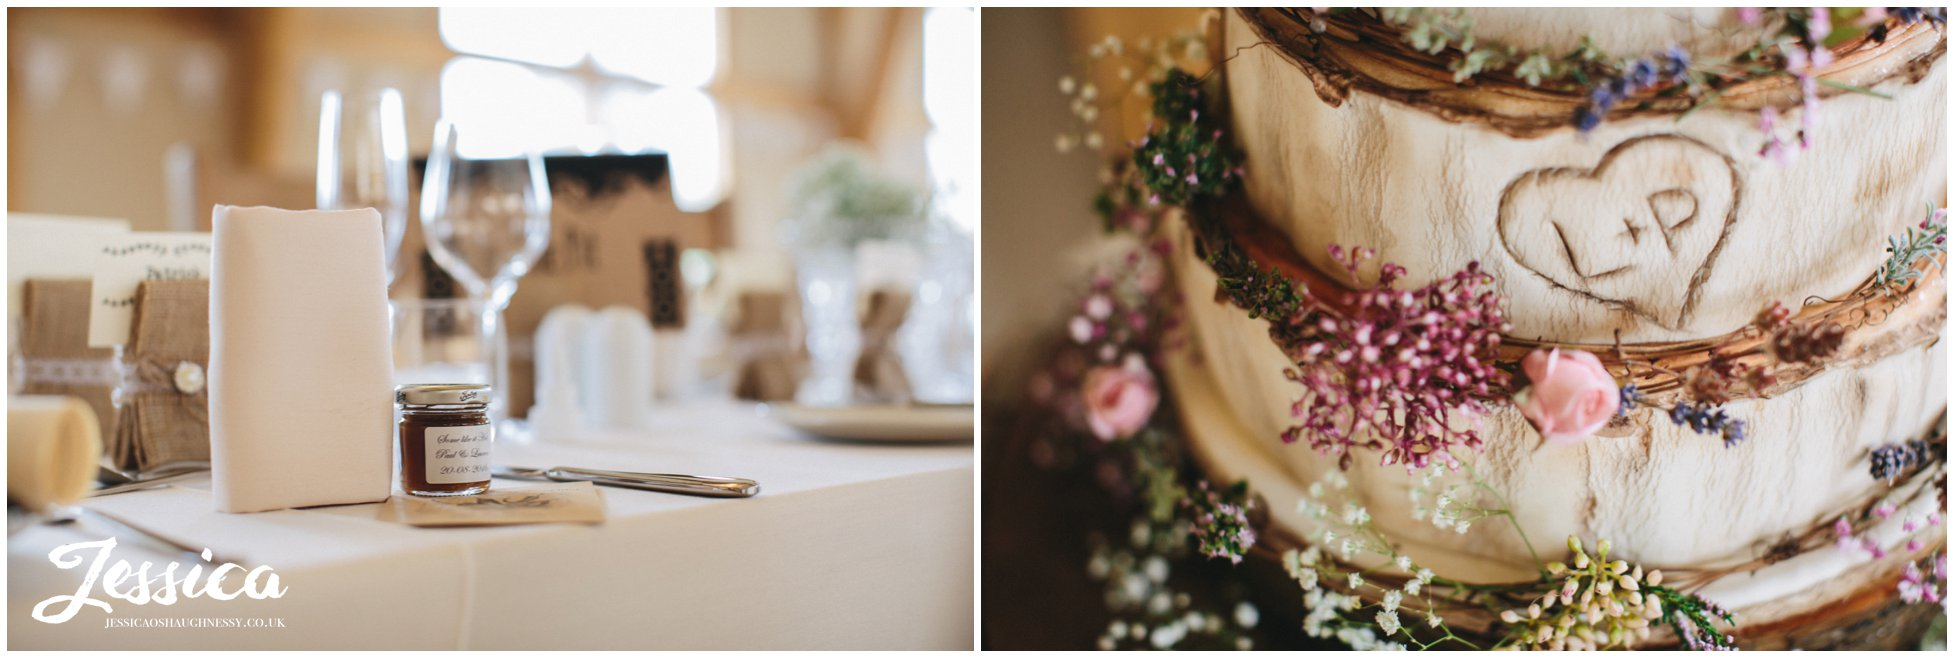 close up of rustic wedding details at a north wales wedding